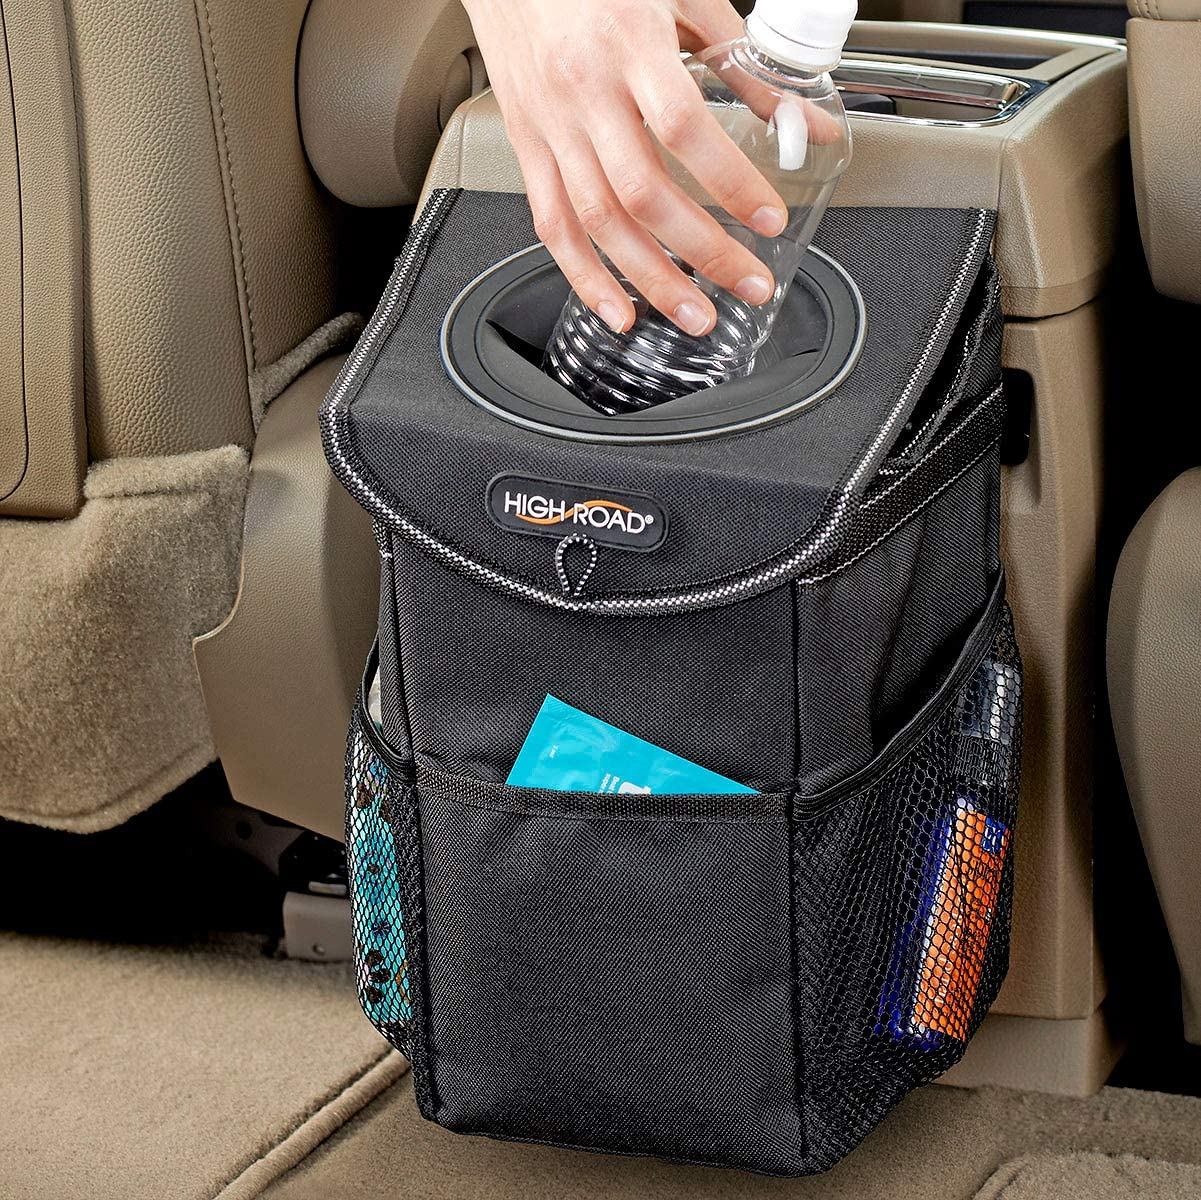 Top 10 Best Car Trash Cans in 2021 Reviews